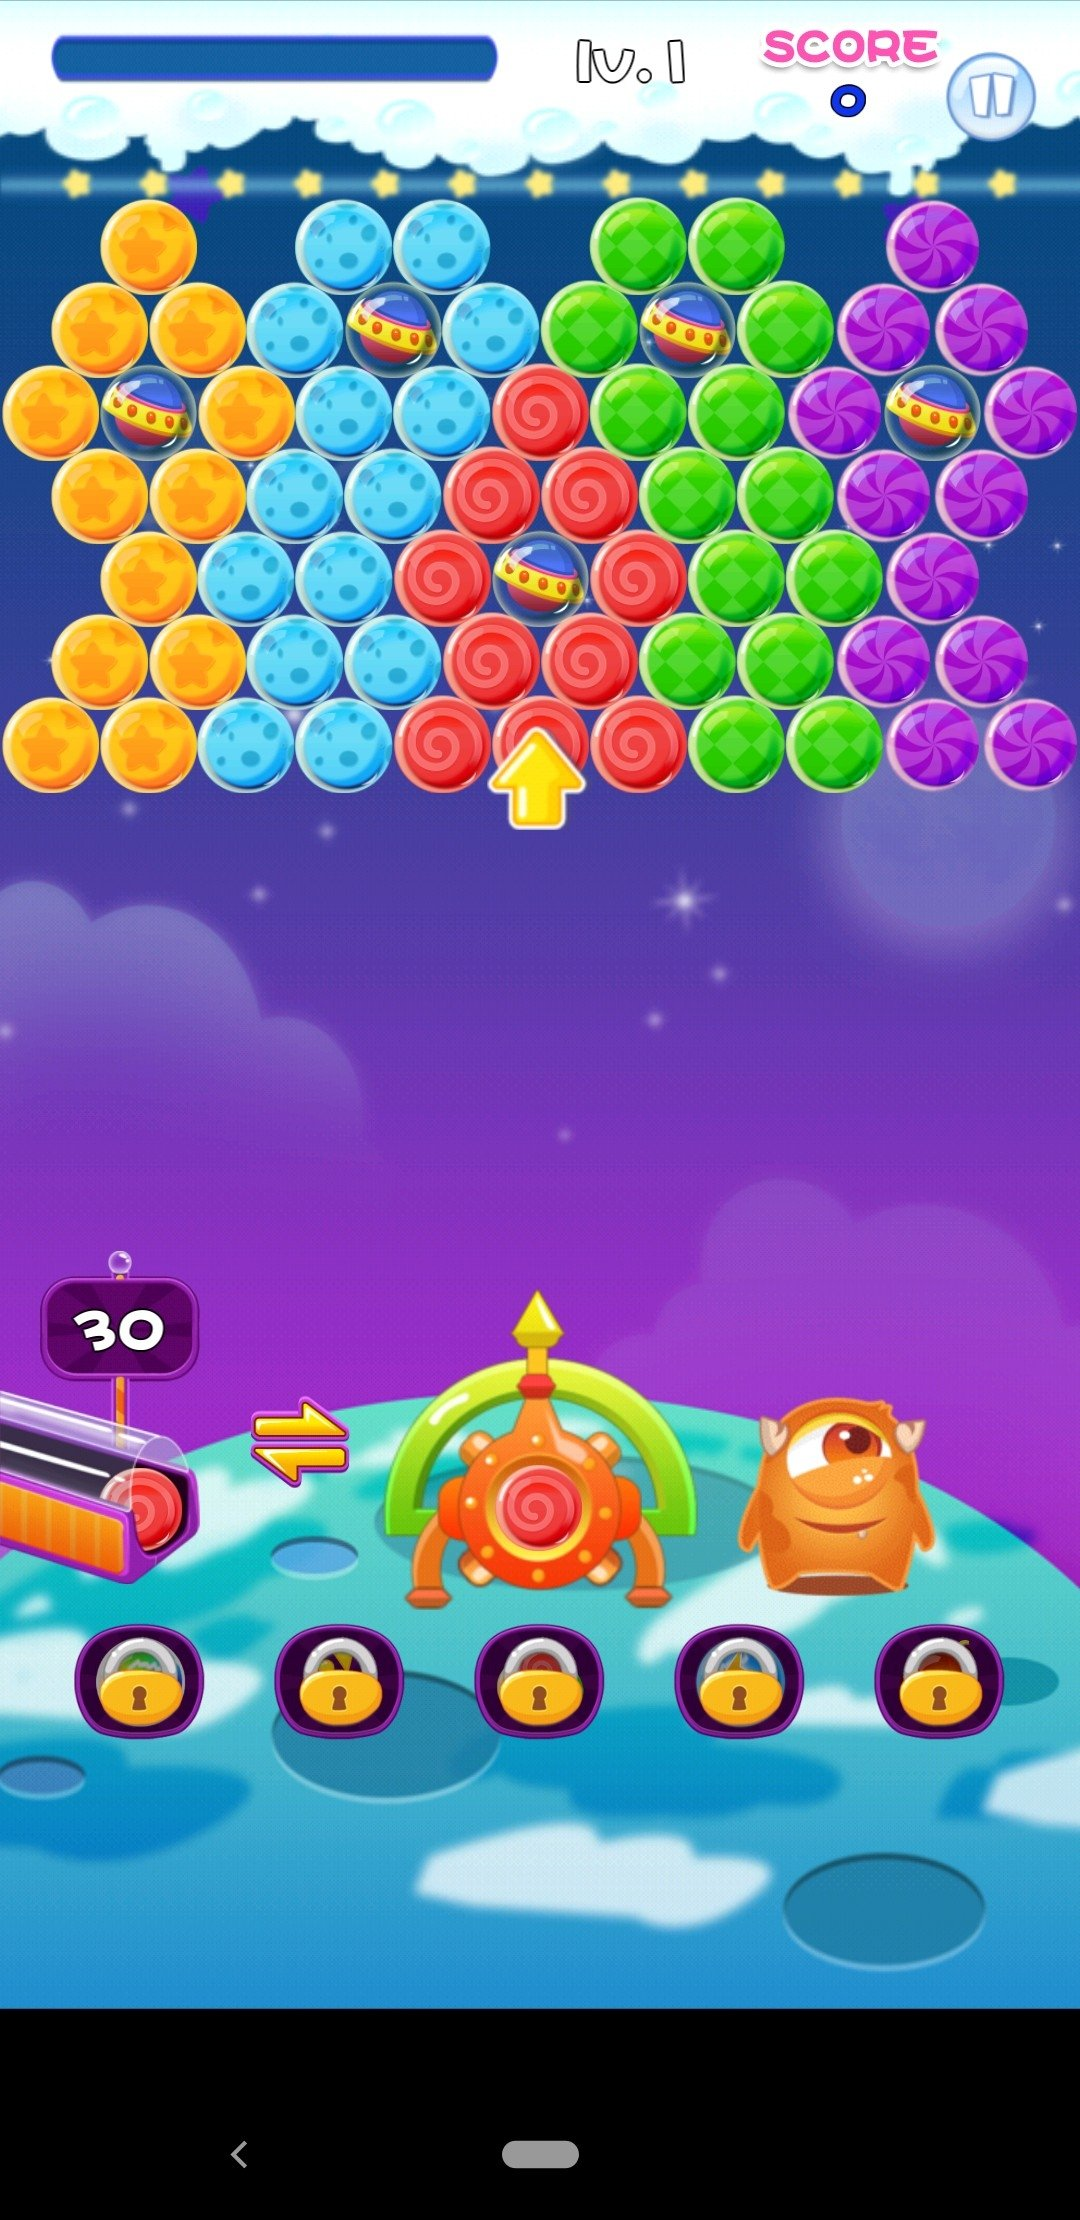 Bubble Shooter Galaxy Android image 5